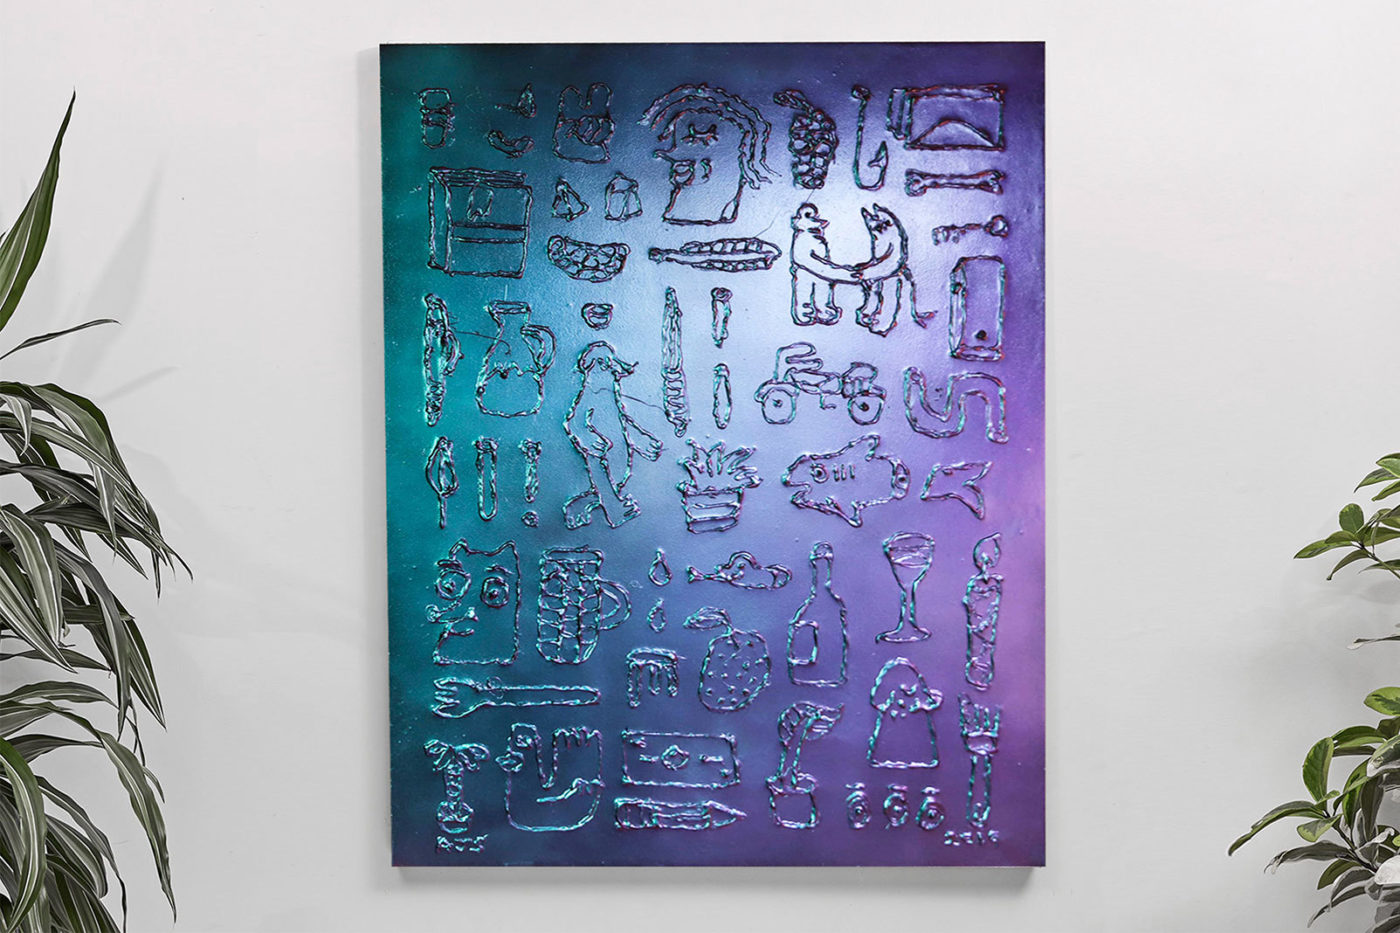 Photochromic hieroglyphics. Dated 2019. Acrylic, raised enamel & photochromic (colour changing) pigment on 760x1015mm canvas (Available)